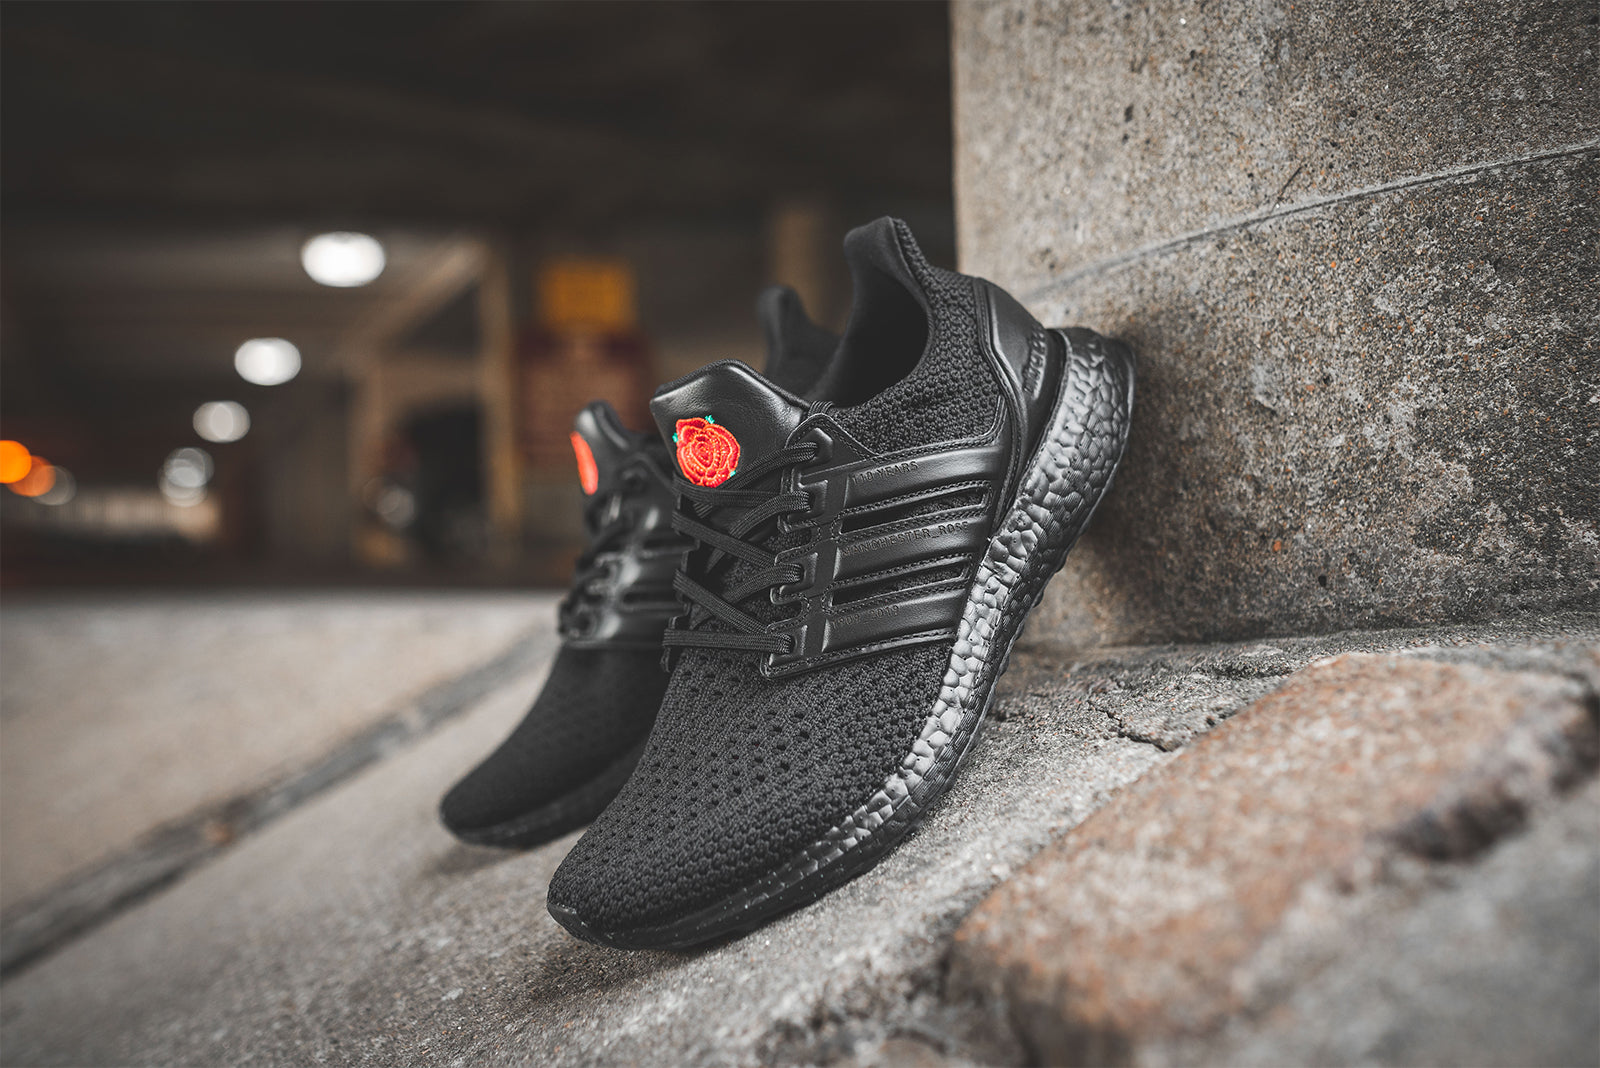 Adidas Ultraboost X Manchester United Red Rose Hanon